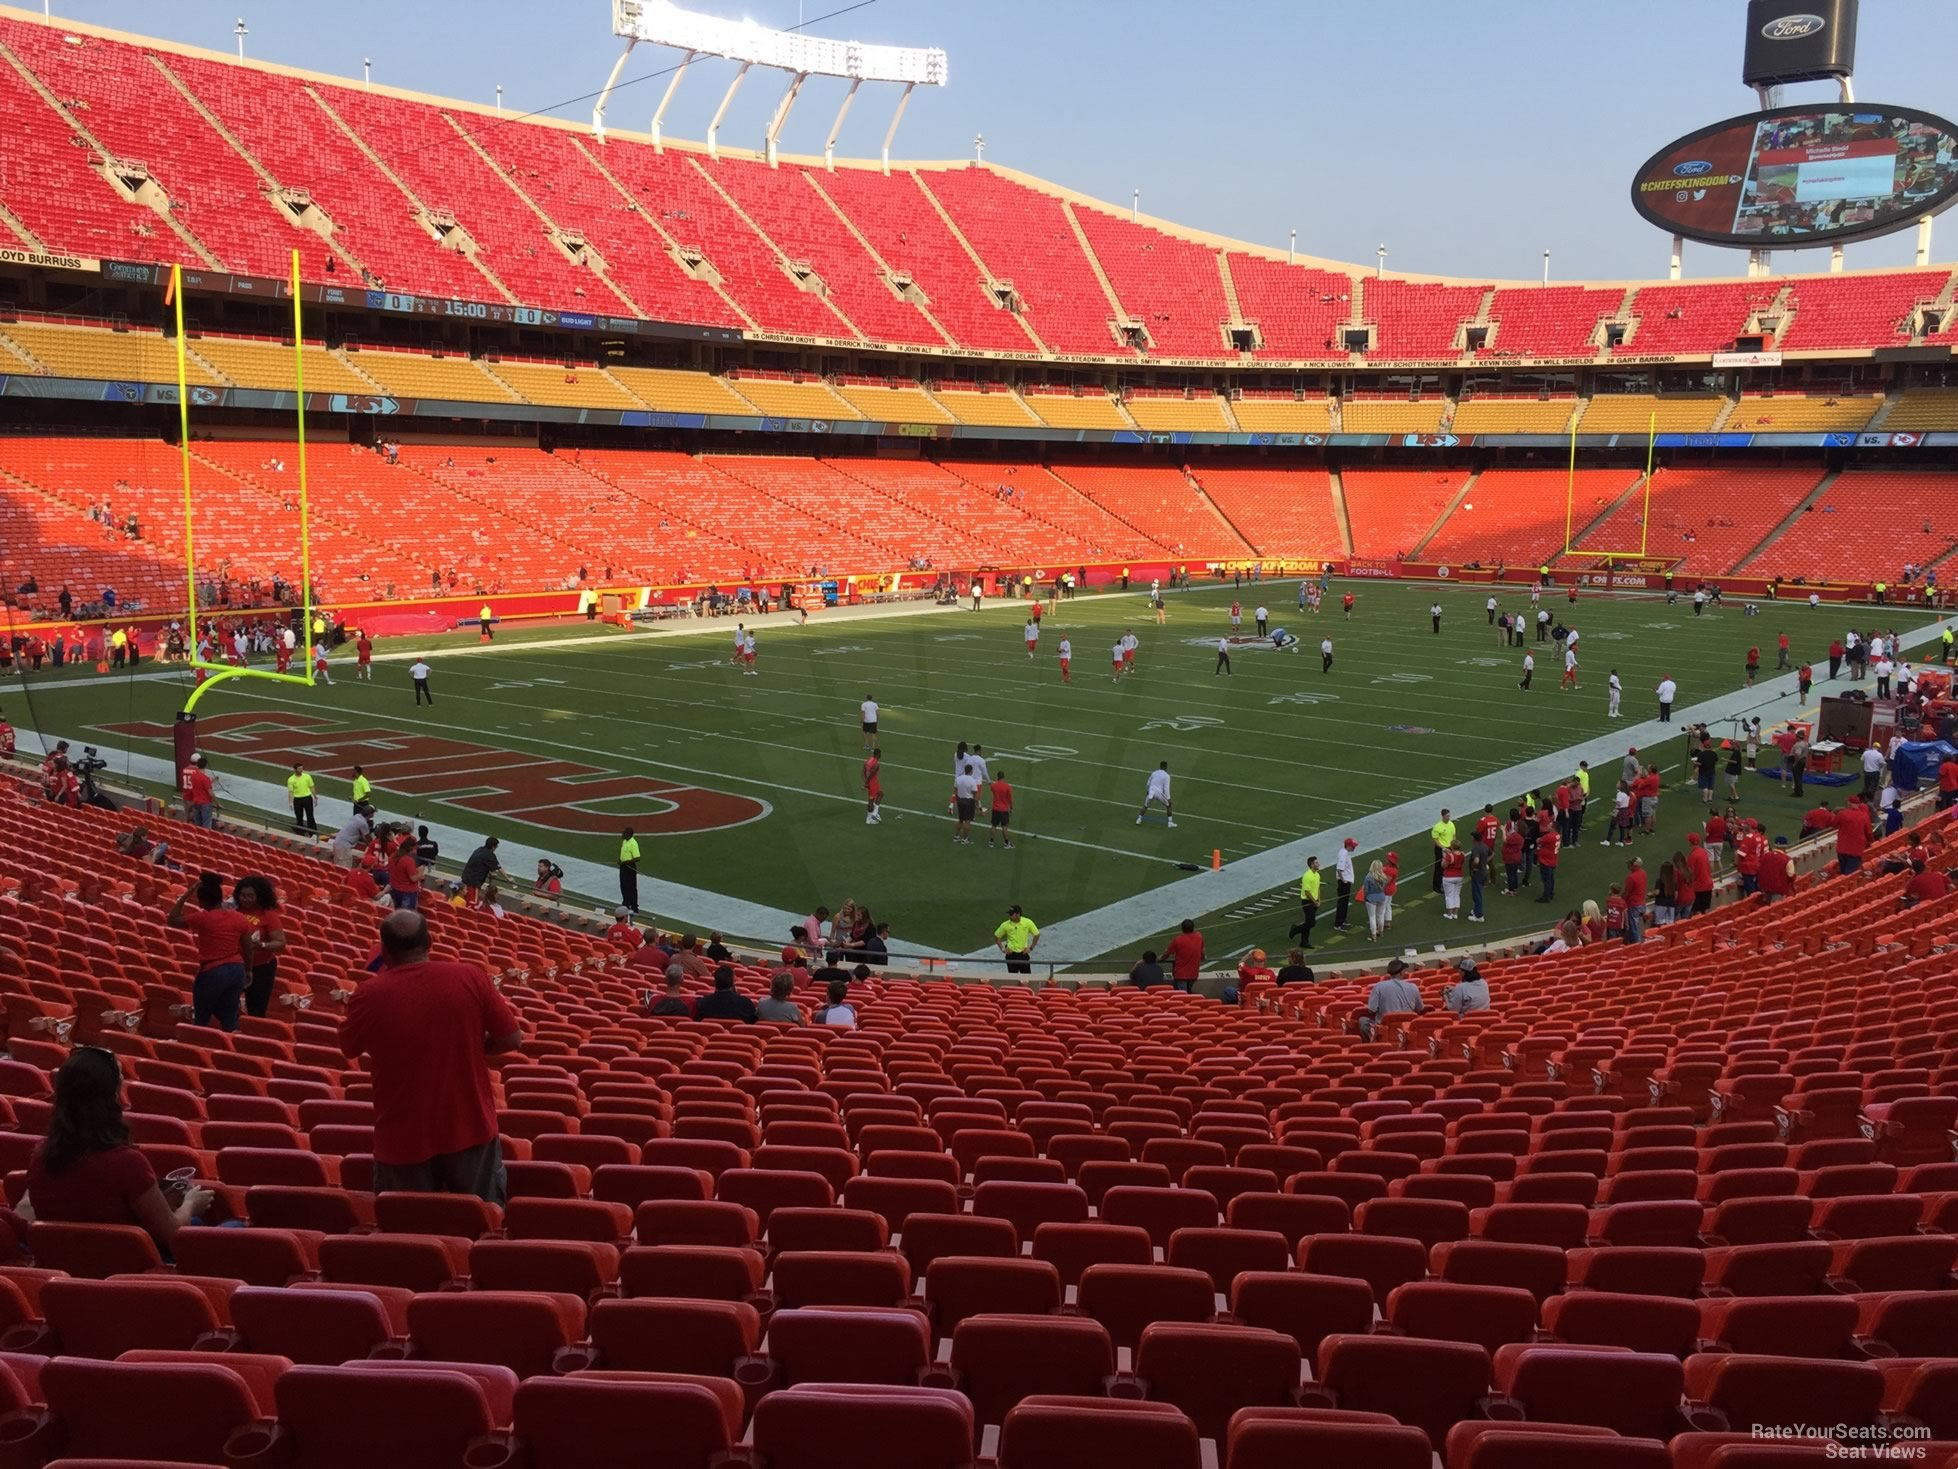 Seat View for Arrowhead Stadium Section 125, Row 30